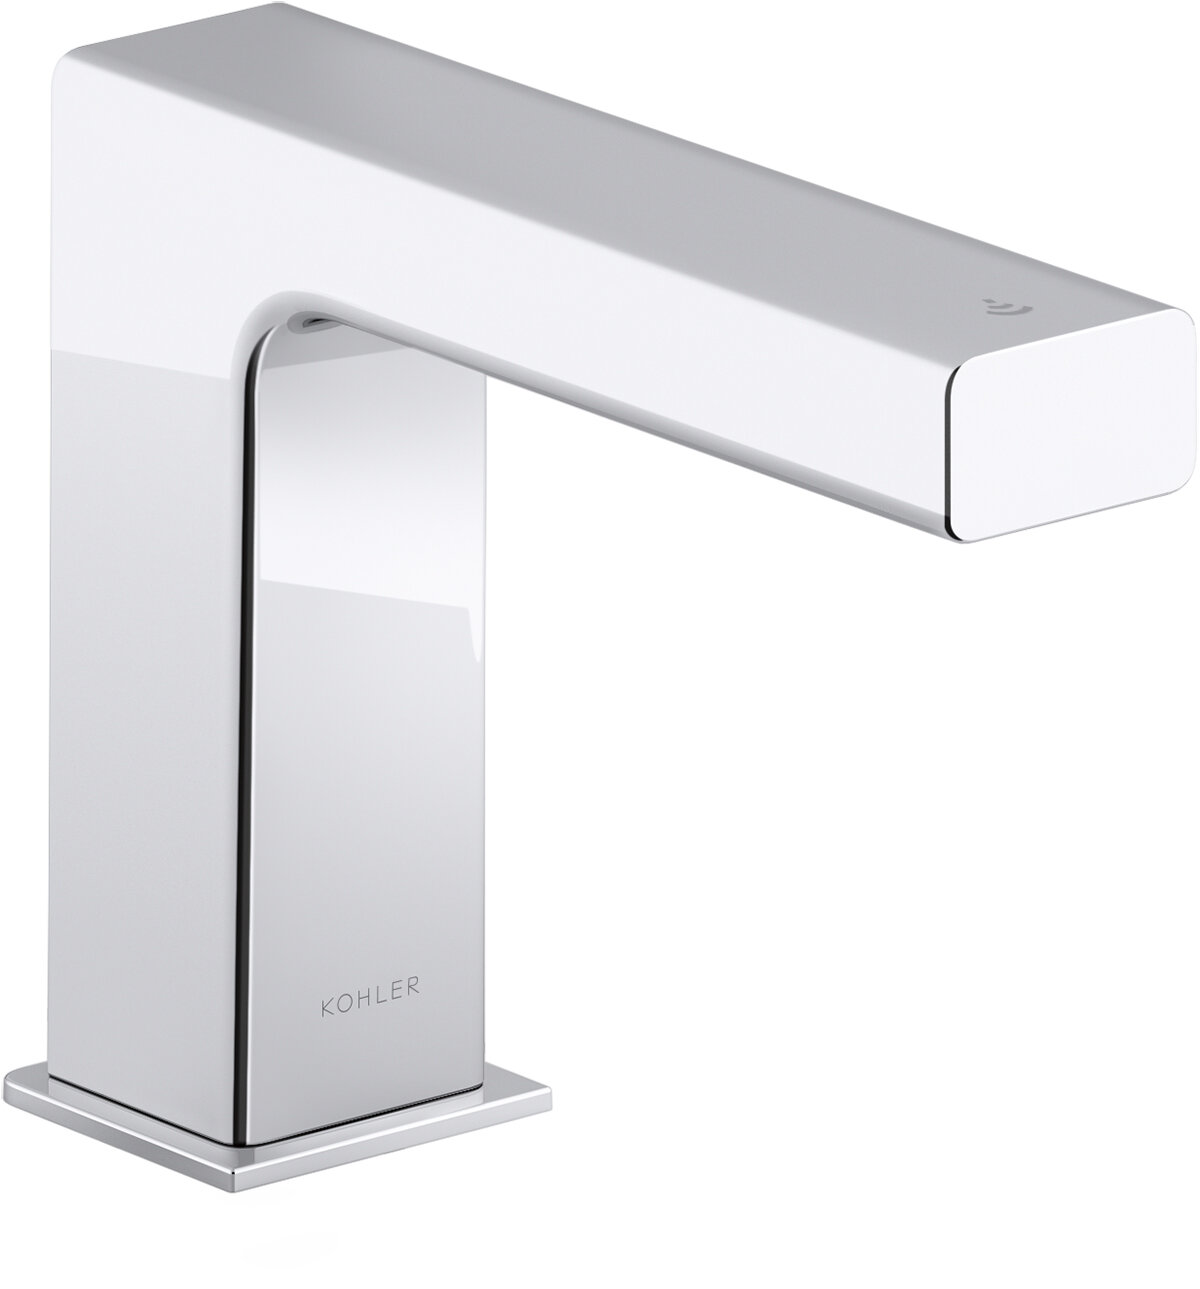 strayt touchless bathroom sink faucet with kinesis sensor technology and mixer dc powered